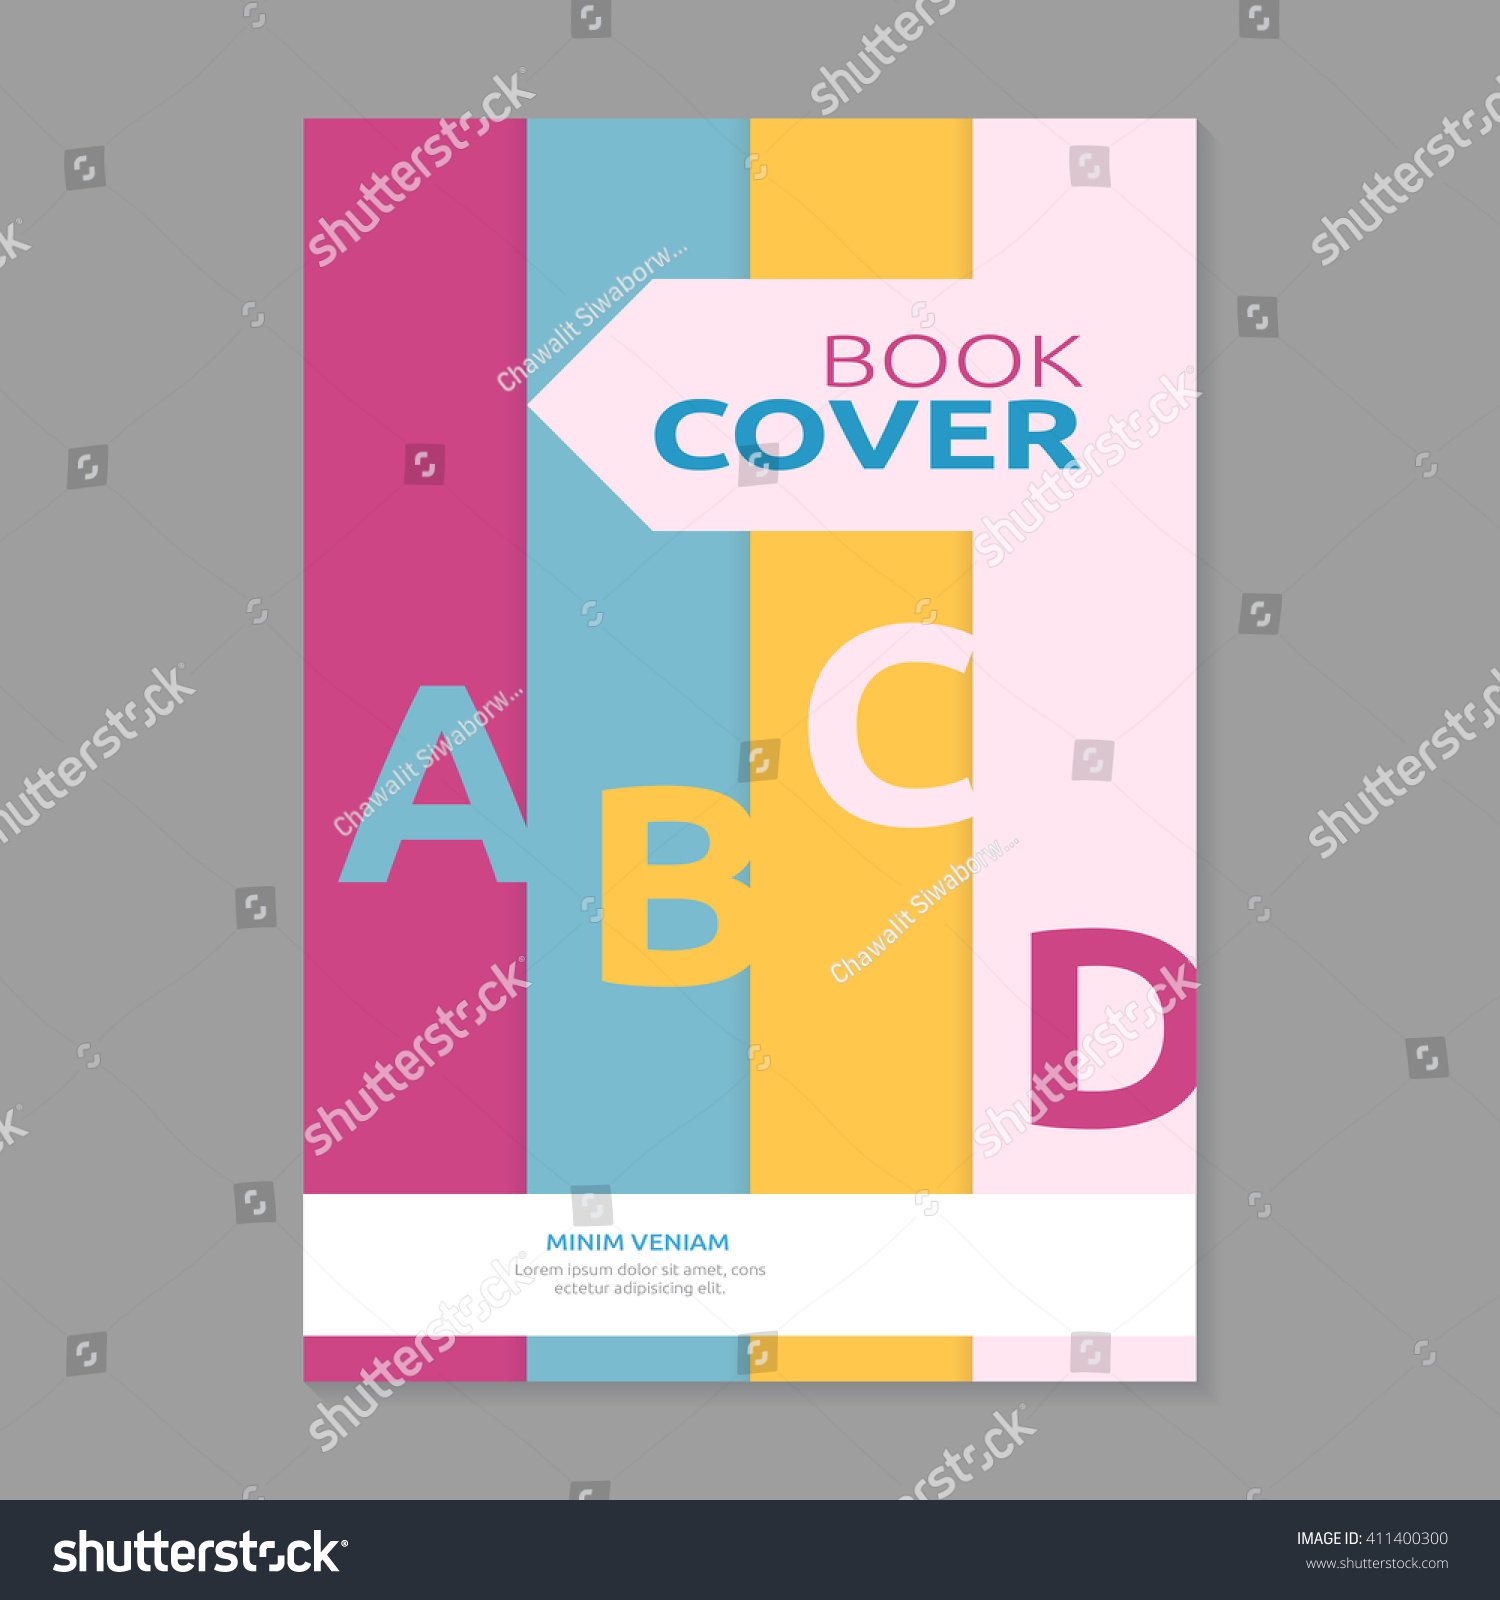 Book Cover Vector : Sweet color book cover design template stock vector